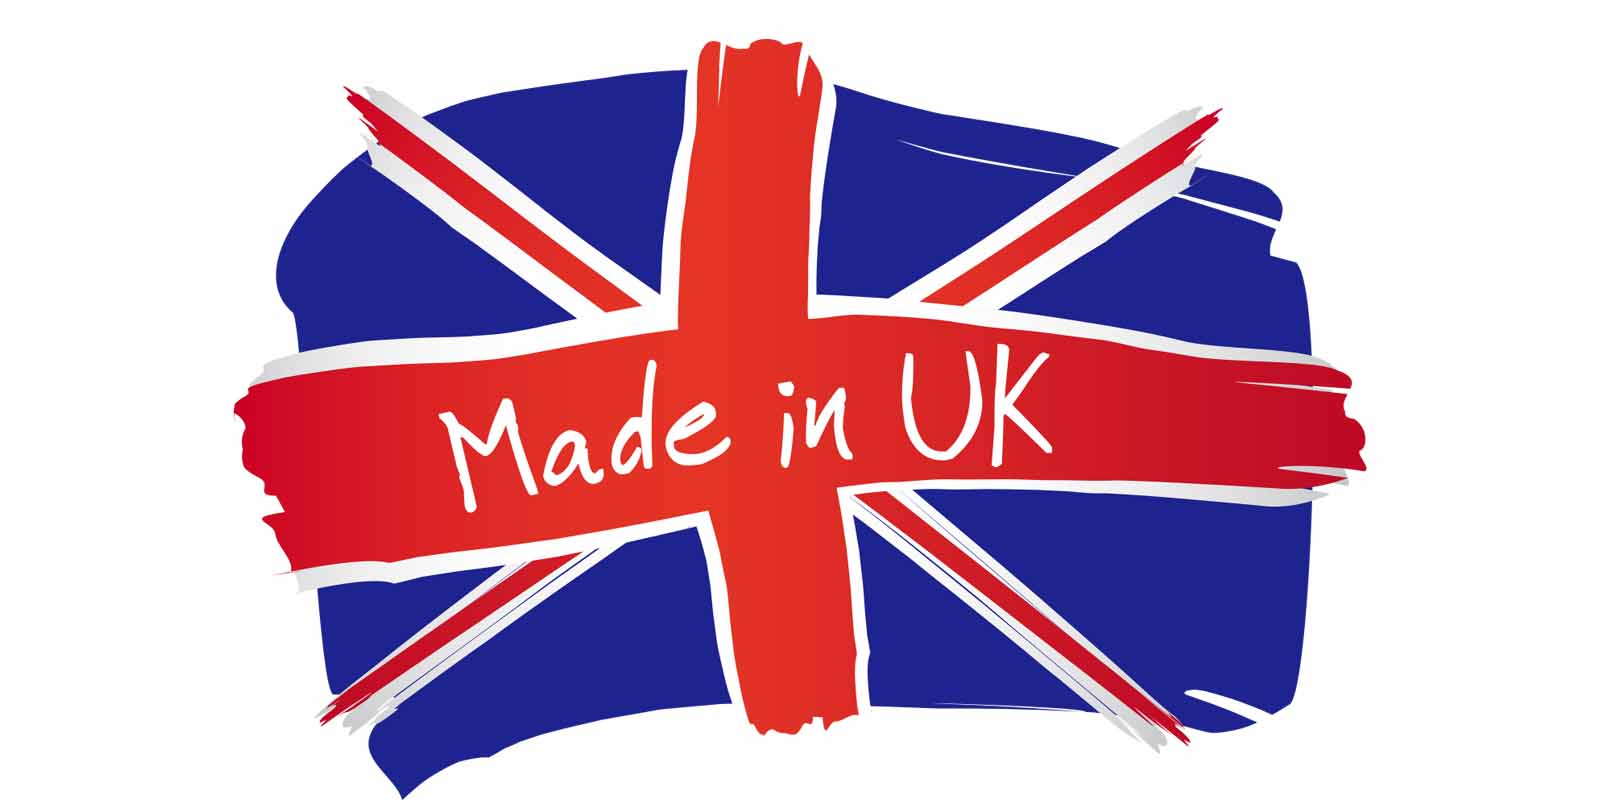 ENGINEERS MADE IN UK